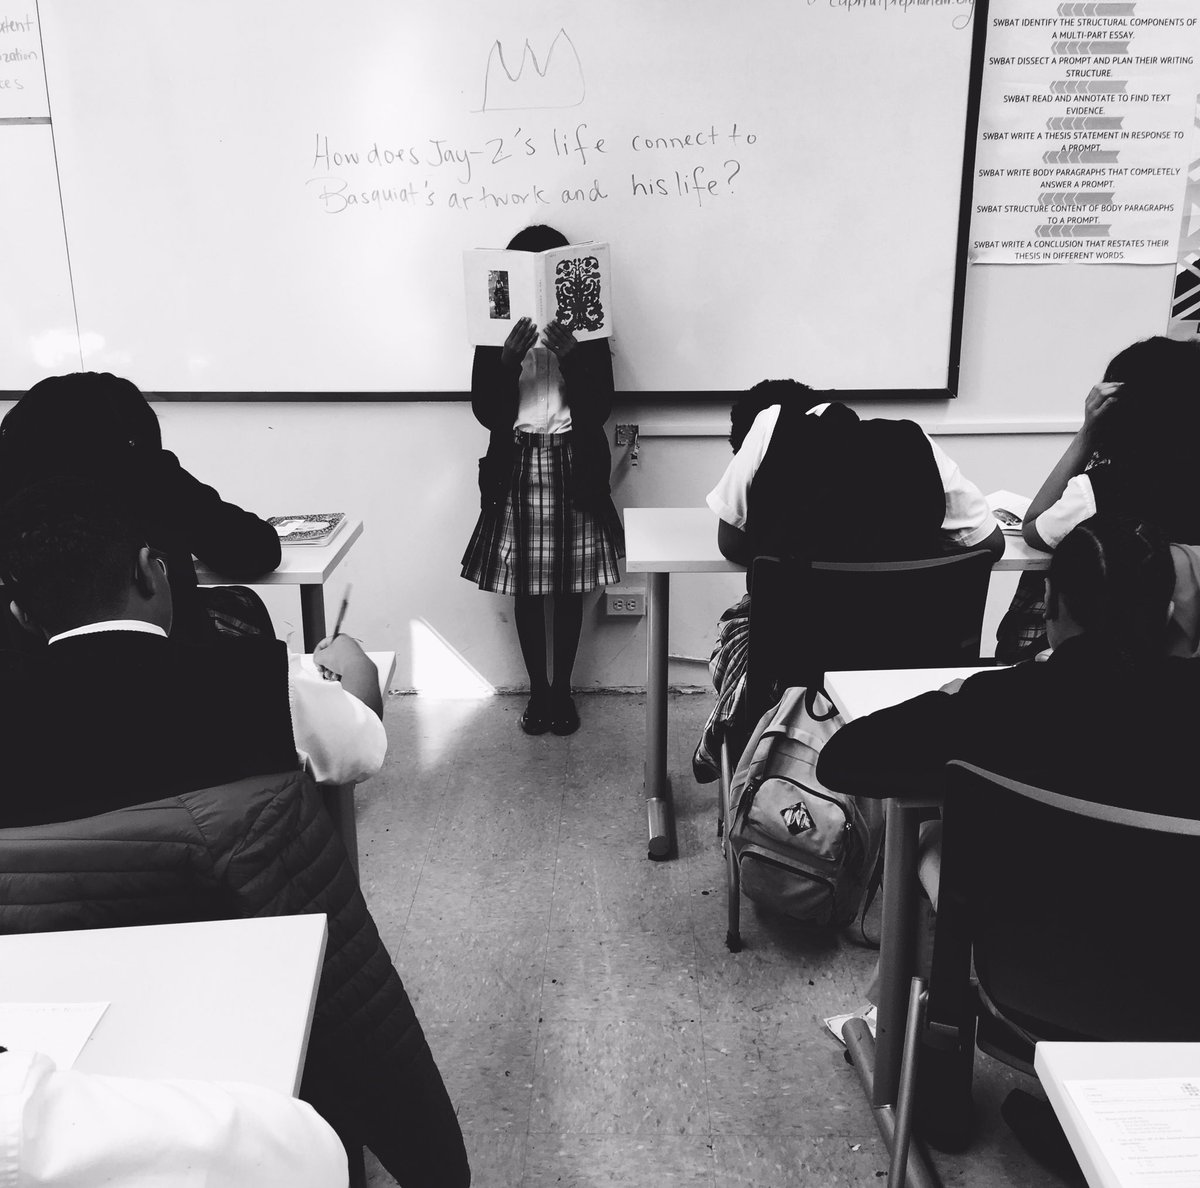 This week my advisory class has been drawing comparisons between @S_C_&#39;s &quot;Decoded&quot; and #Basquiat&#39;s art + biography. <br>http://pic.twitter.com/HI1irUZZtO